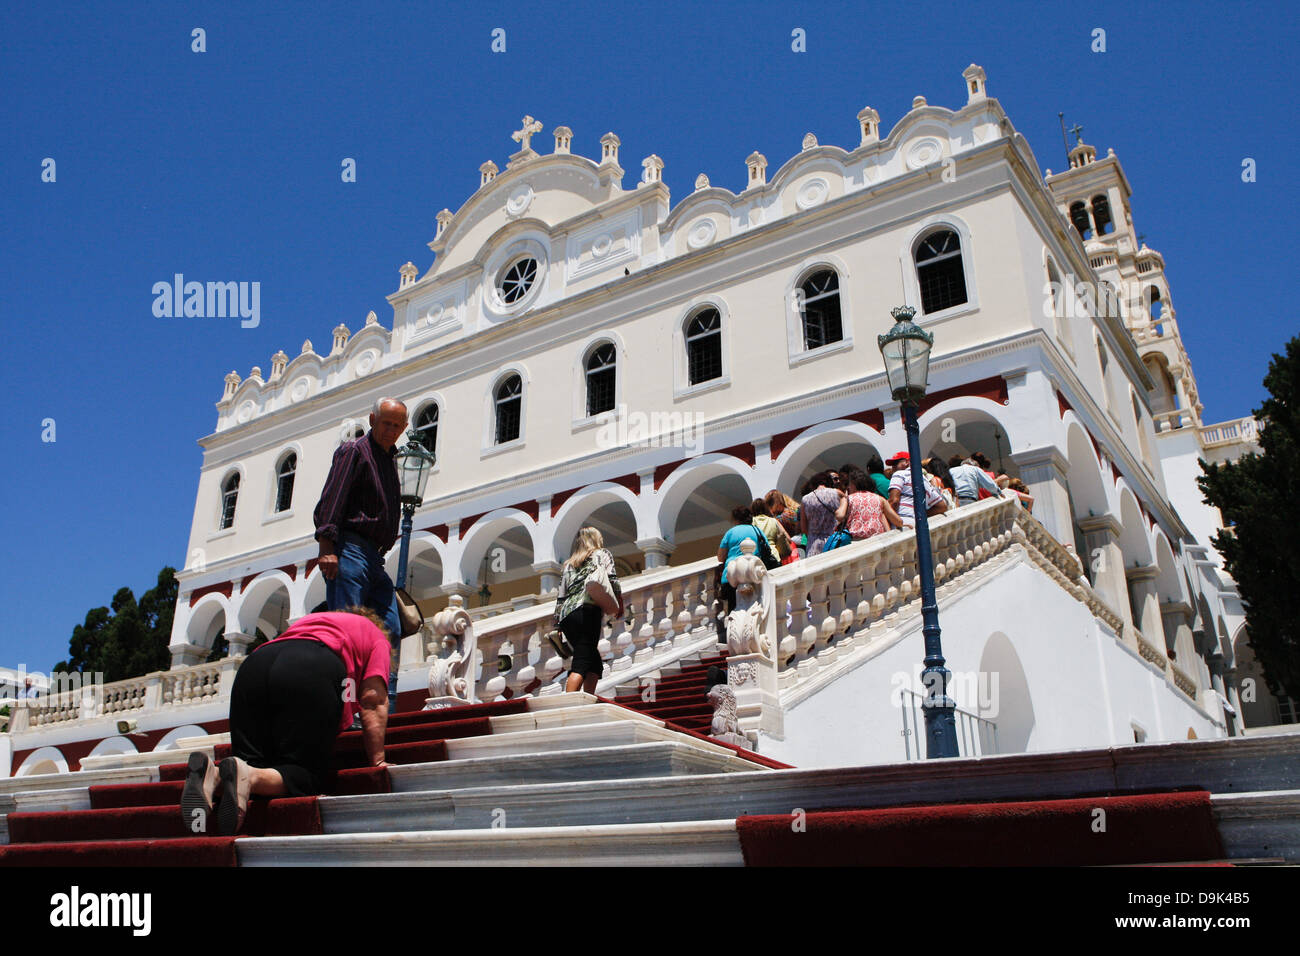 A Pilgrim crawl on her hands and knees to the shrine in the hope of miracles and blessings. Tinos, Greece. - Stock Image